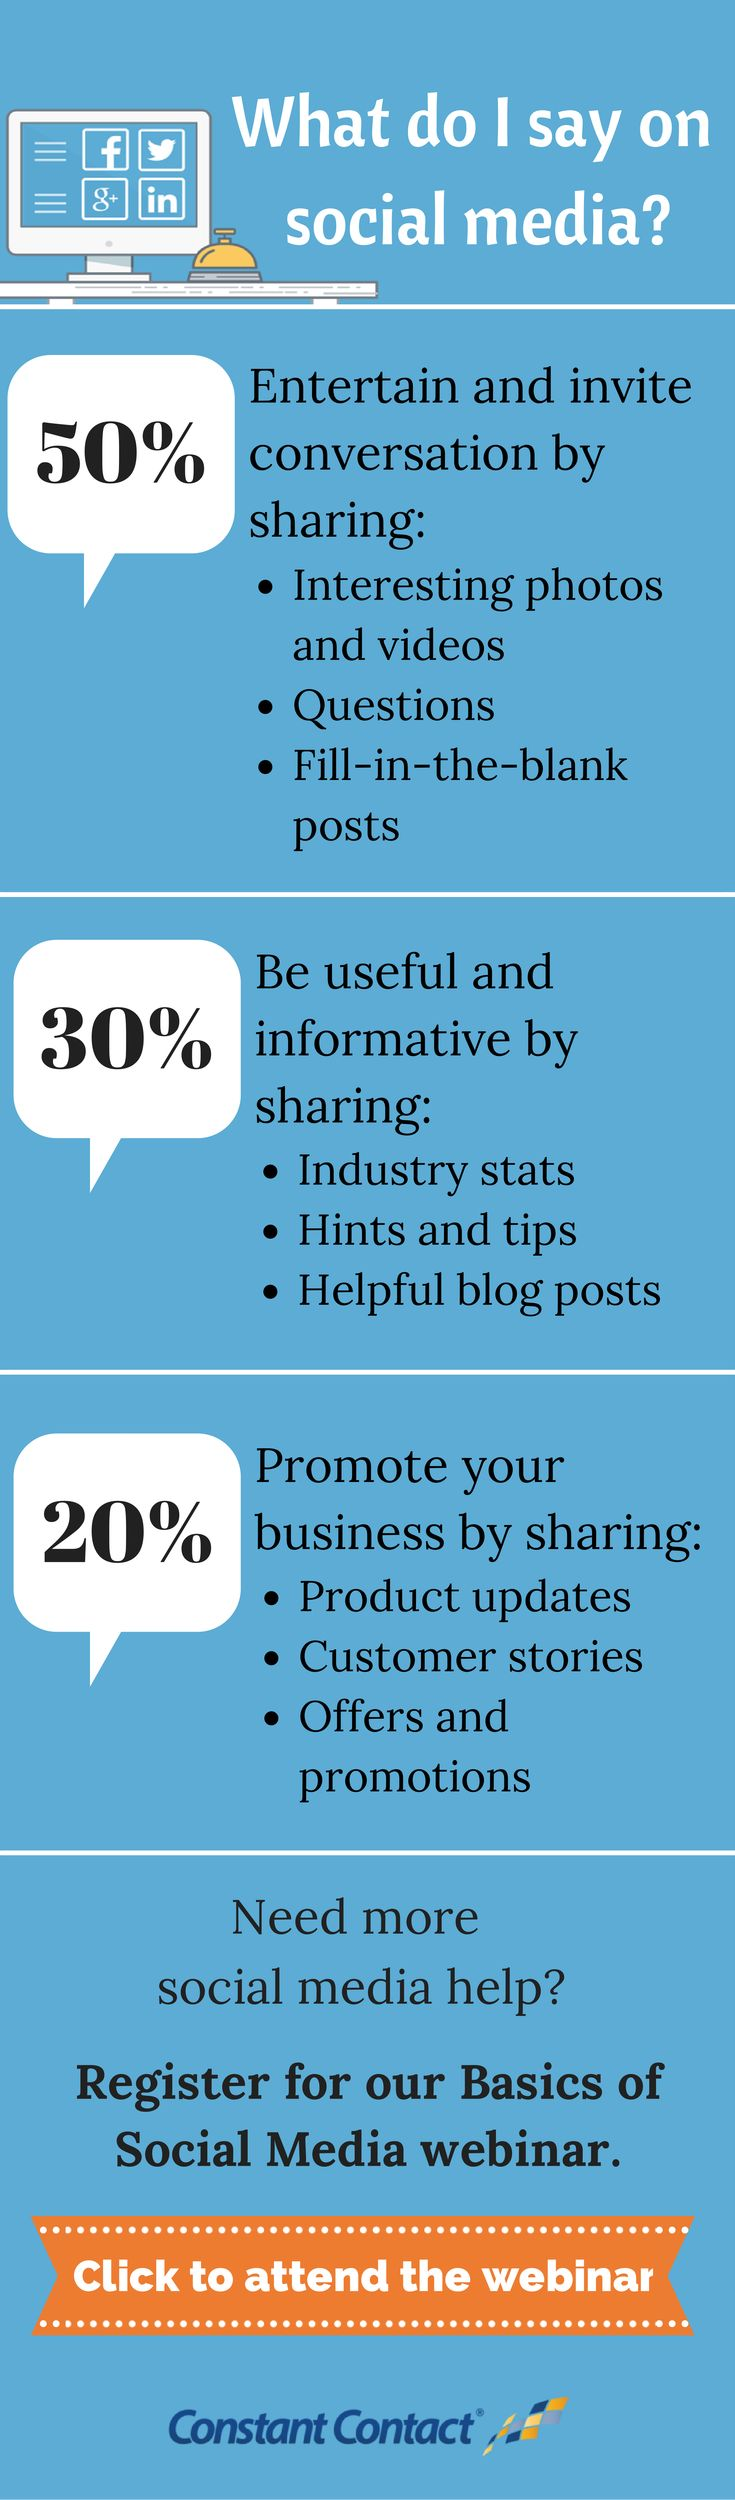 What do I say on social media? We get that question a lot! 50% of your content should entertain and invite conversation. 30% of your content should be useful and informative. 20% should promote your business. Learn more #socialmedia best practices in our Basics of Social Media #webinar http://conta.cc/1rCBoh5